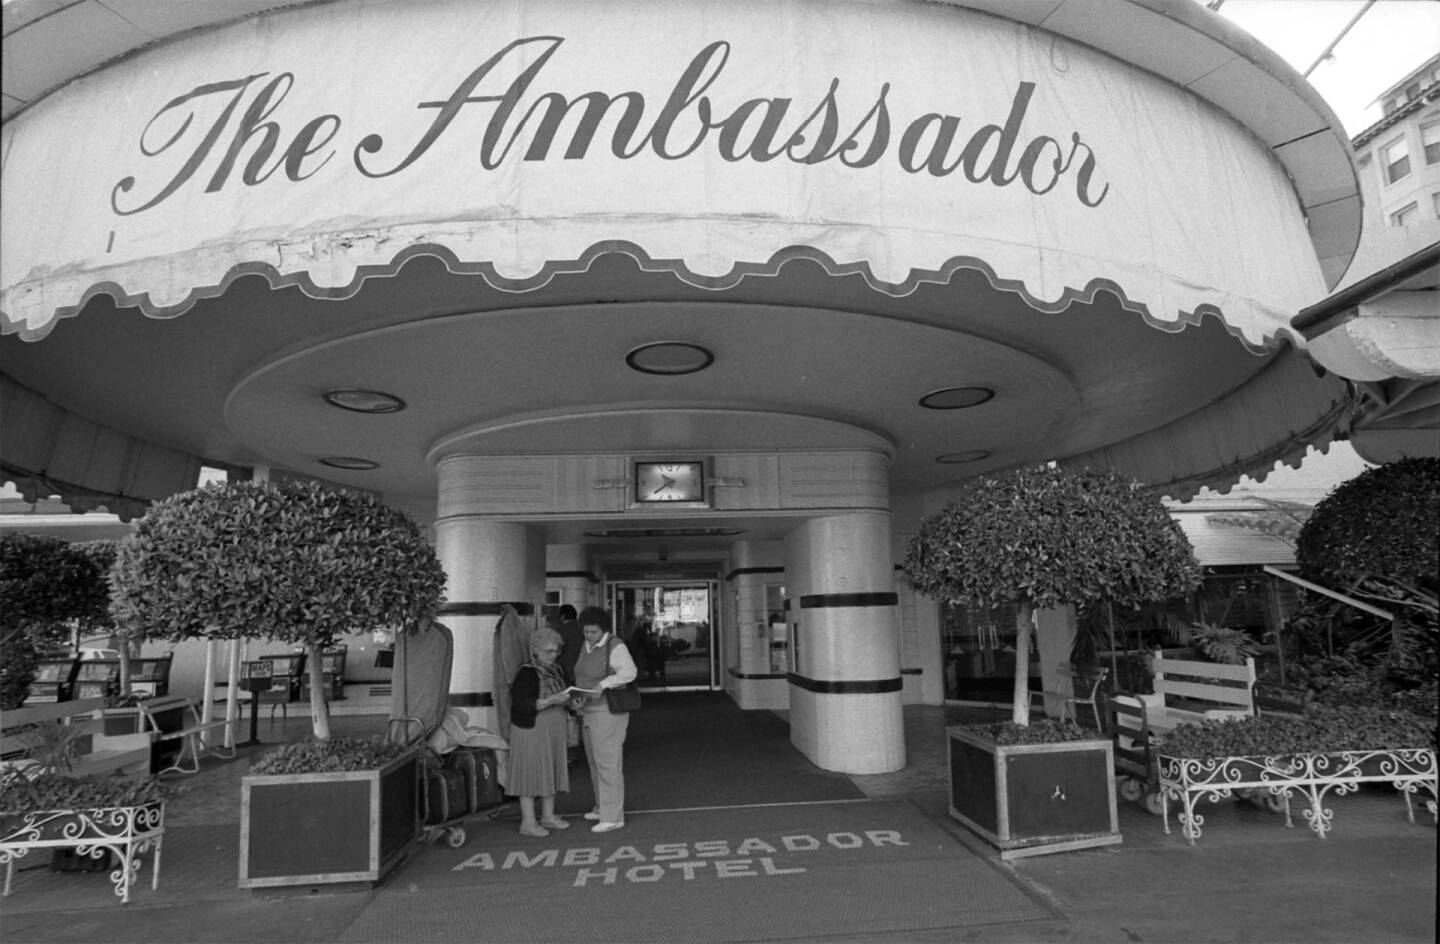 The Ambassador Hotel's main entrance in 1989, just prior to its closing